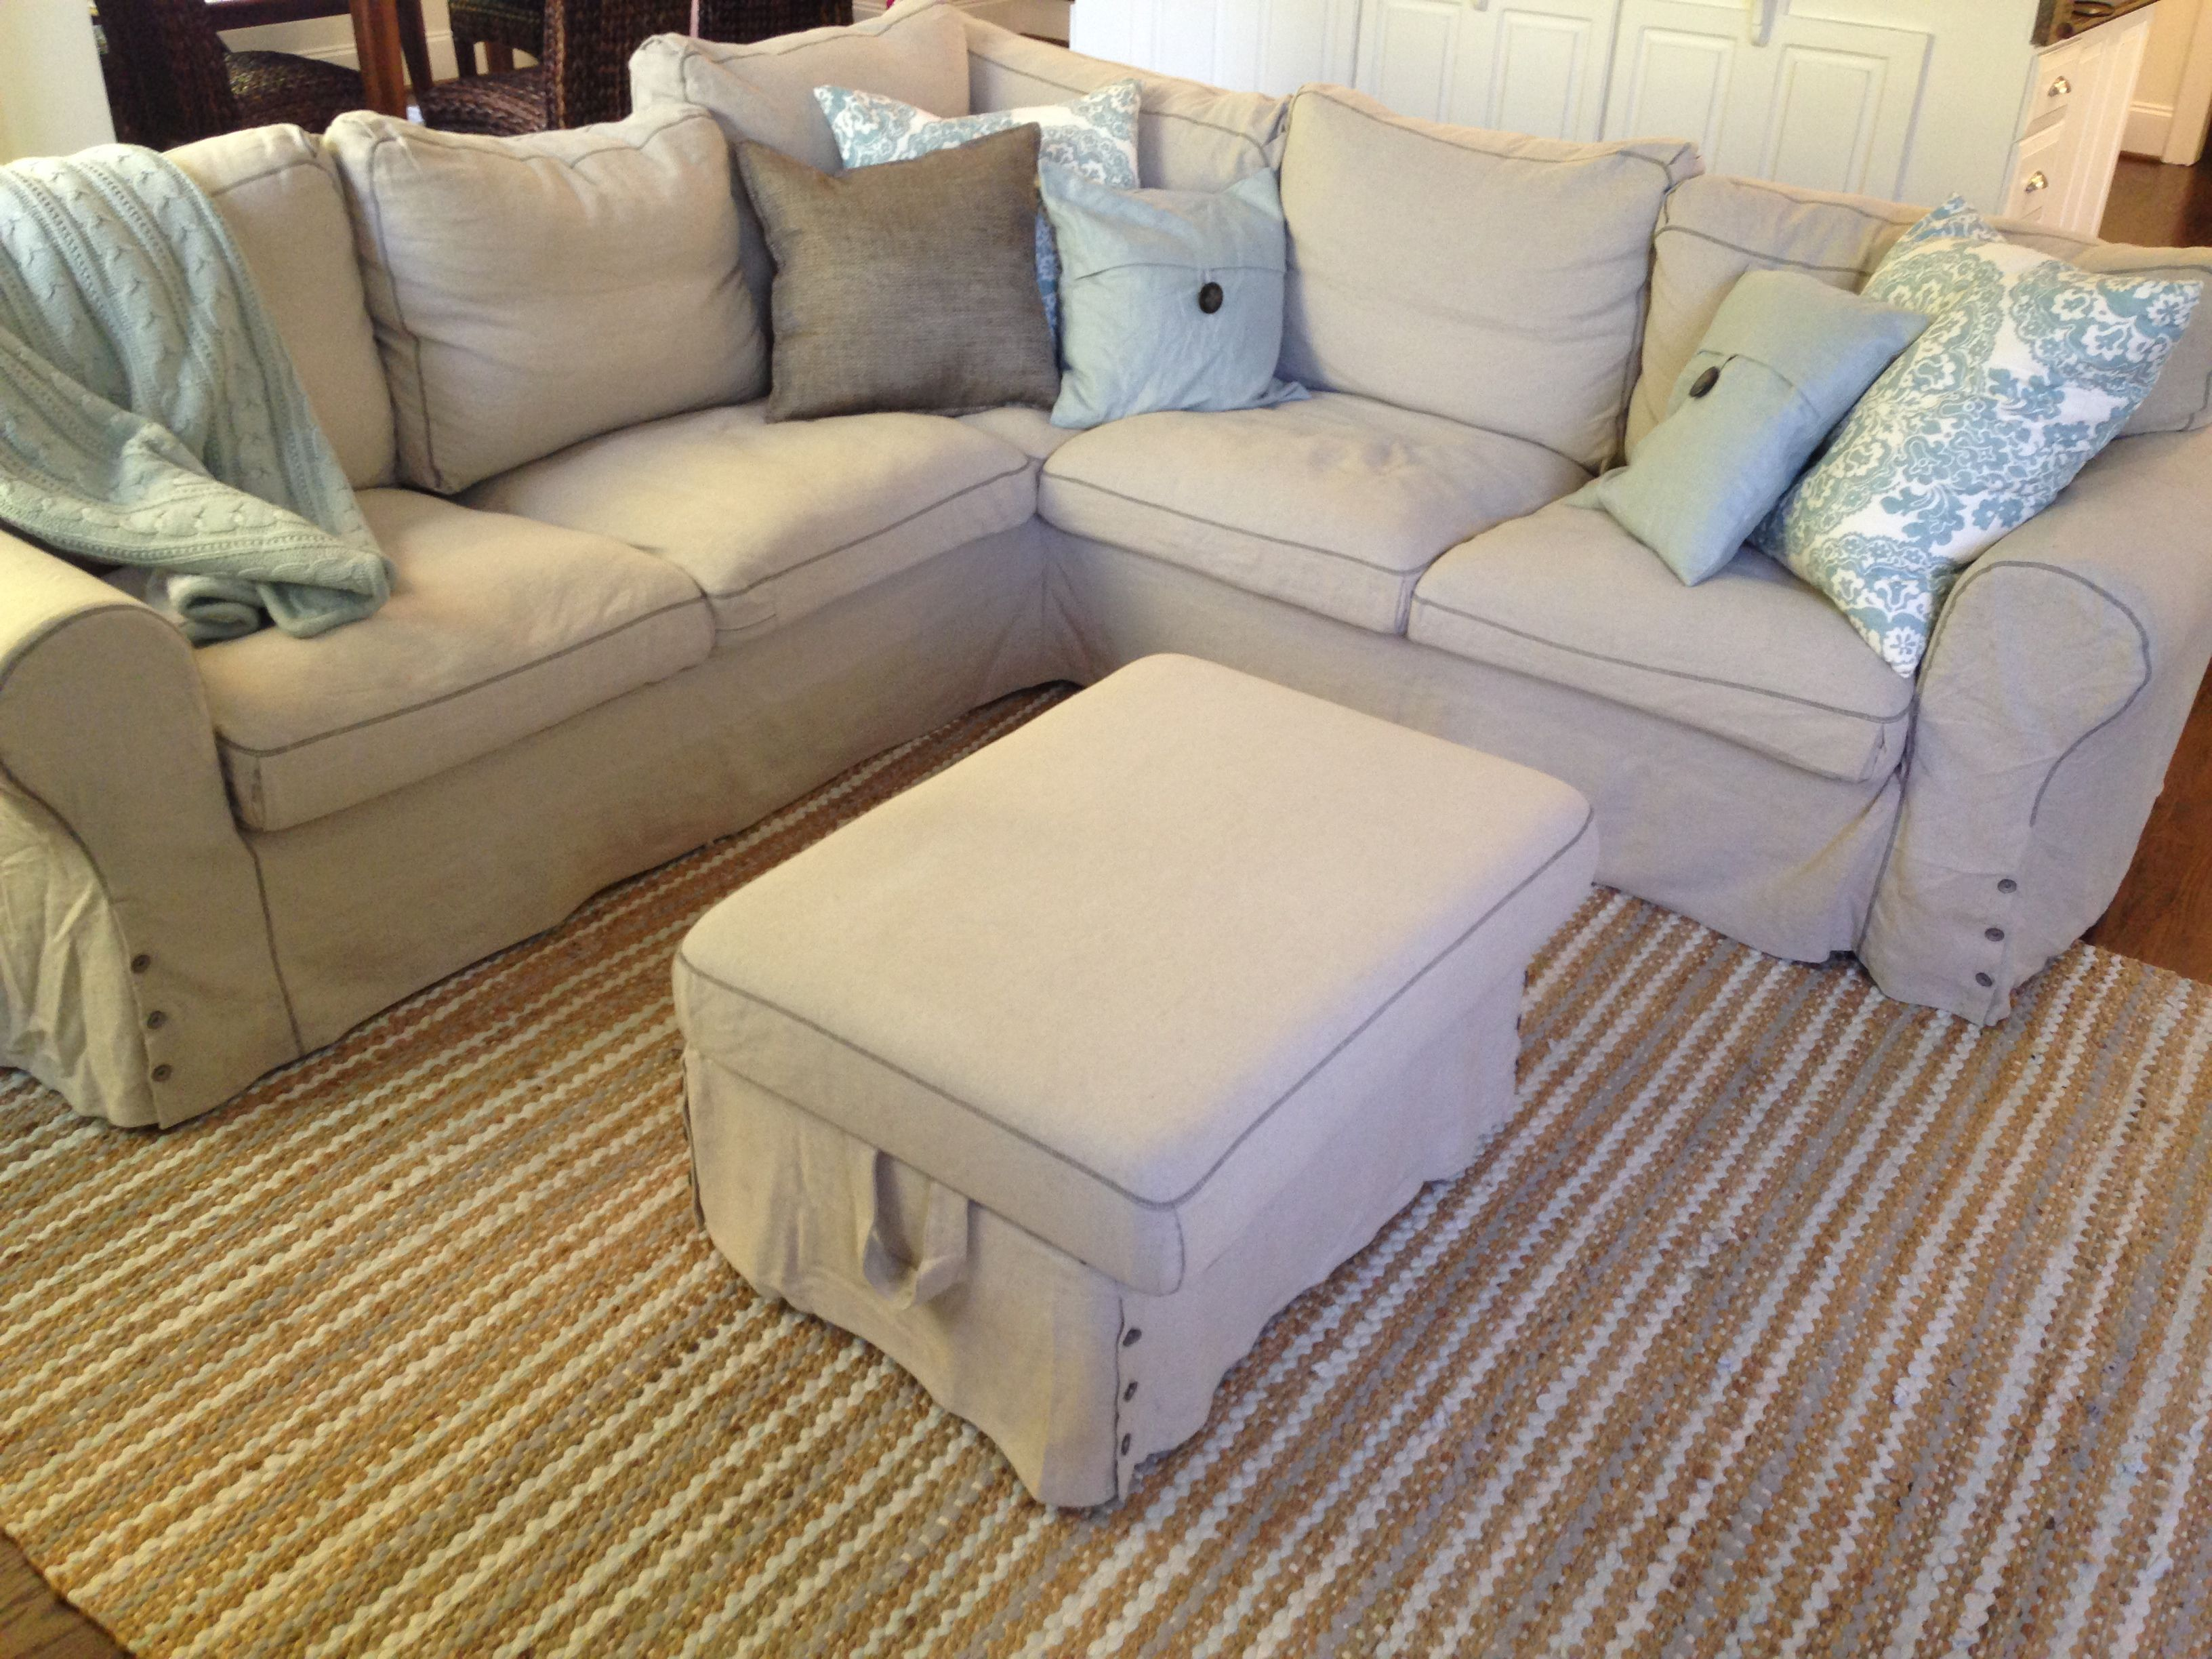 Ikea Ektorp Sectional In Risane Natural The Cover Is Removable